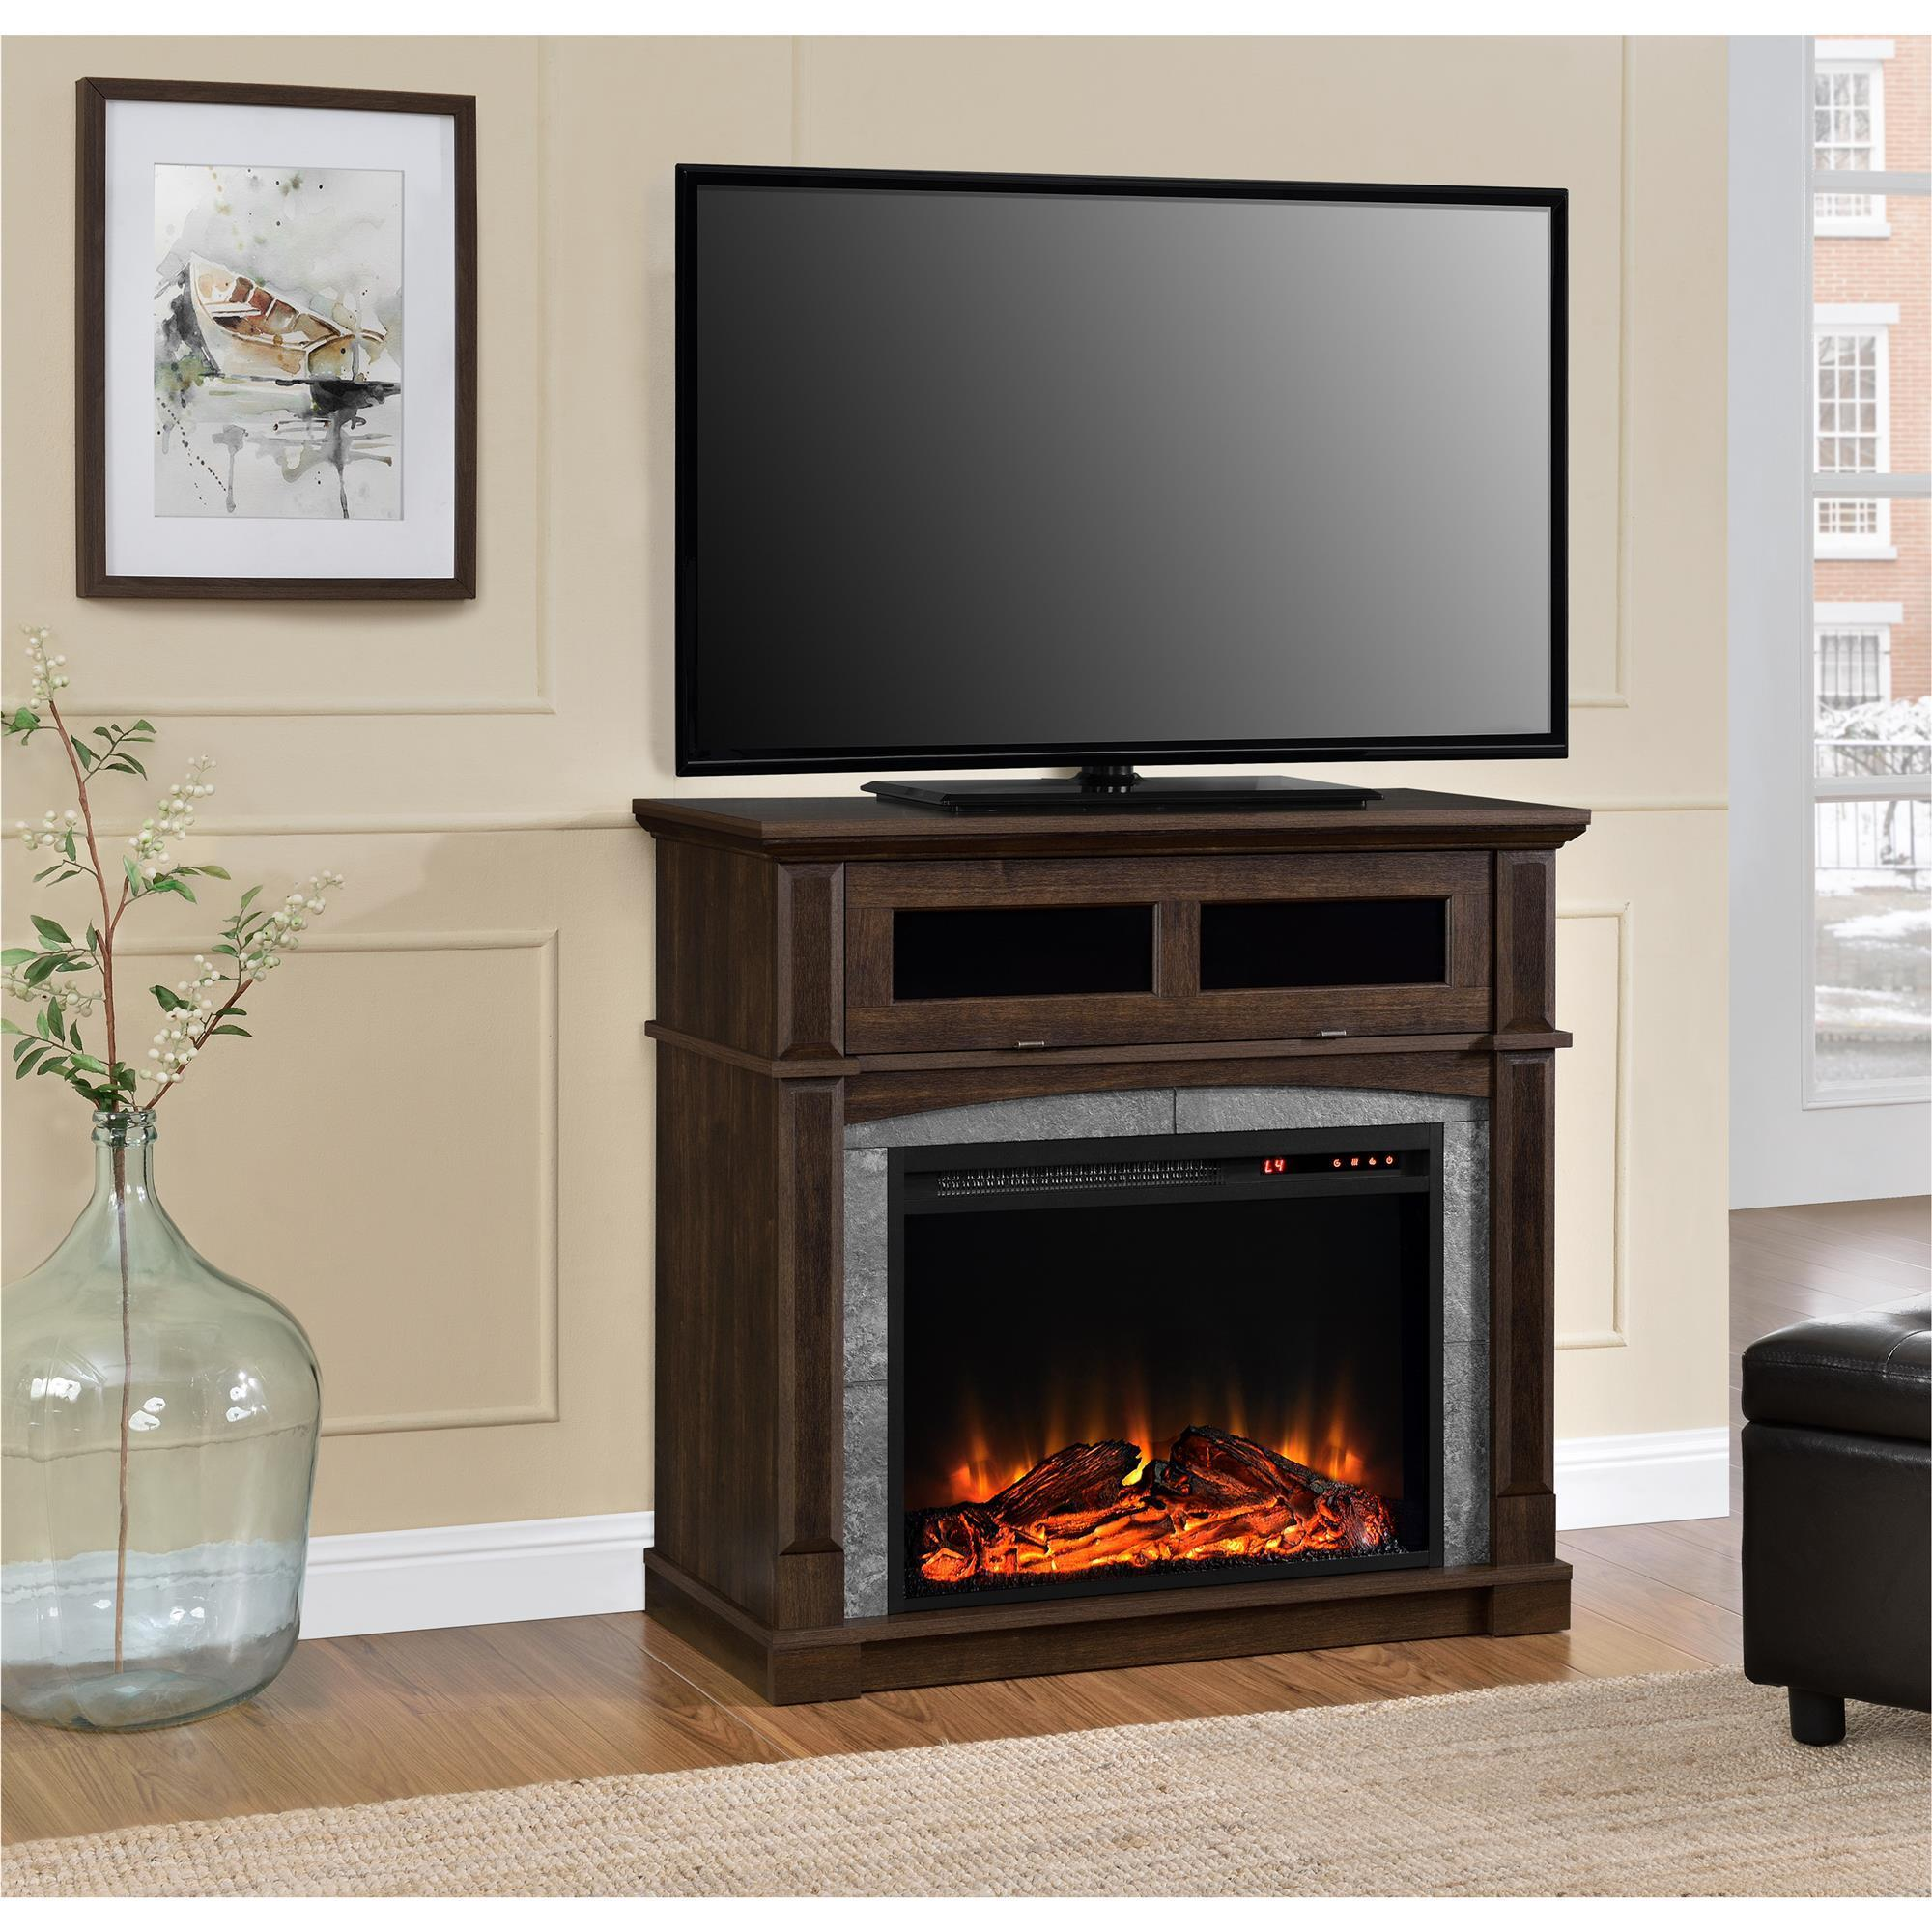 Ameriwood Home Thompson Place Electric Fireplace 37-inch ...